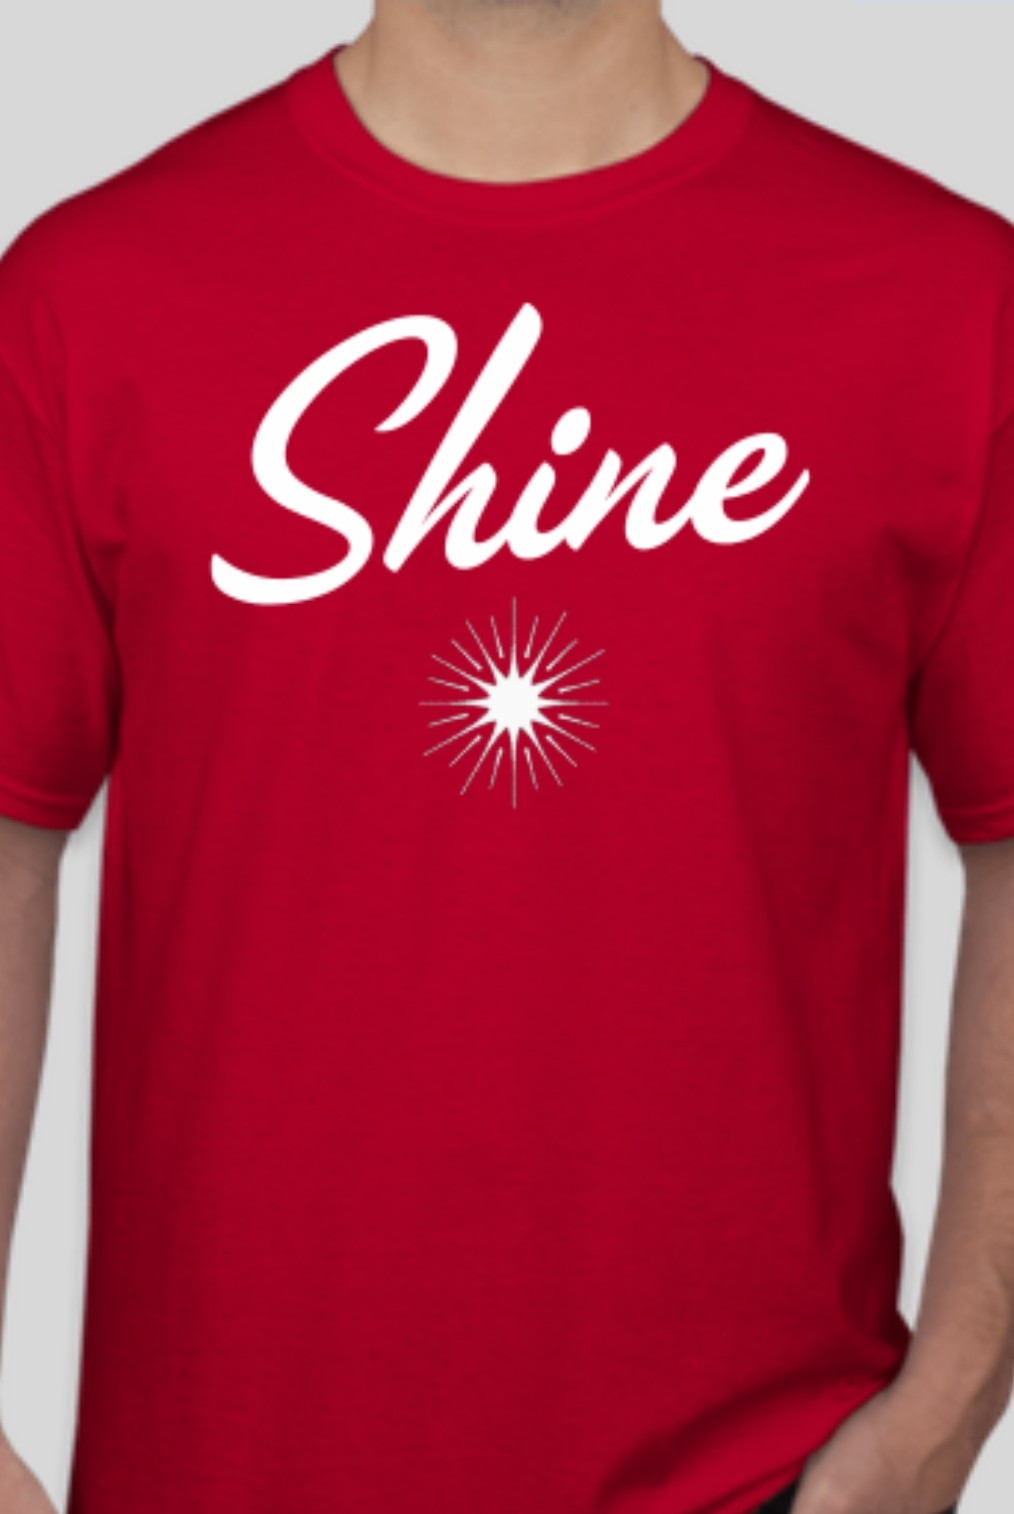 Shine Red T-shirt